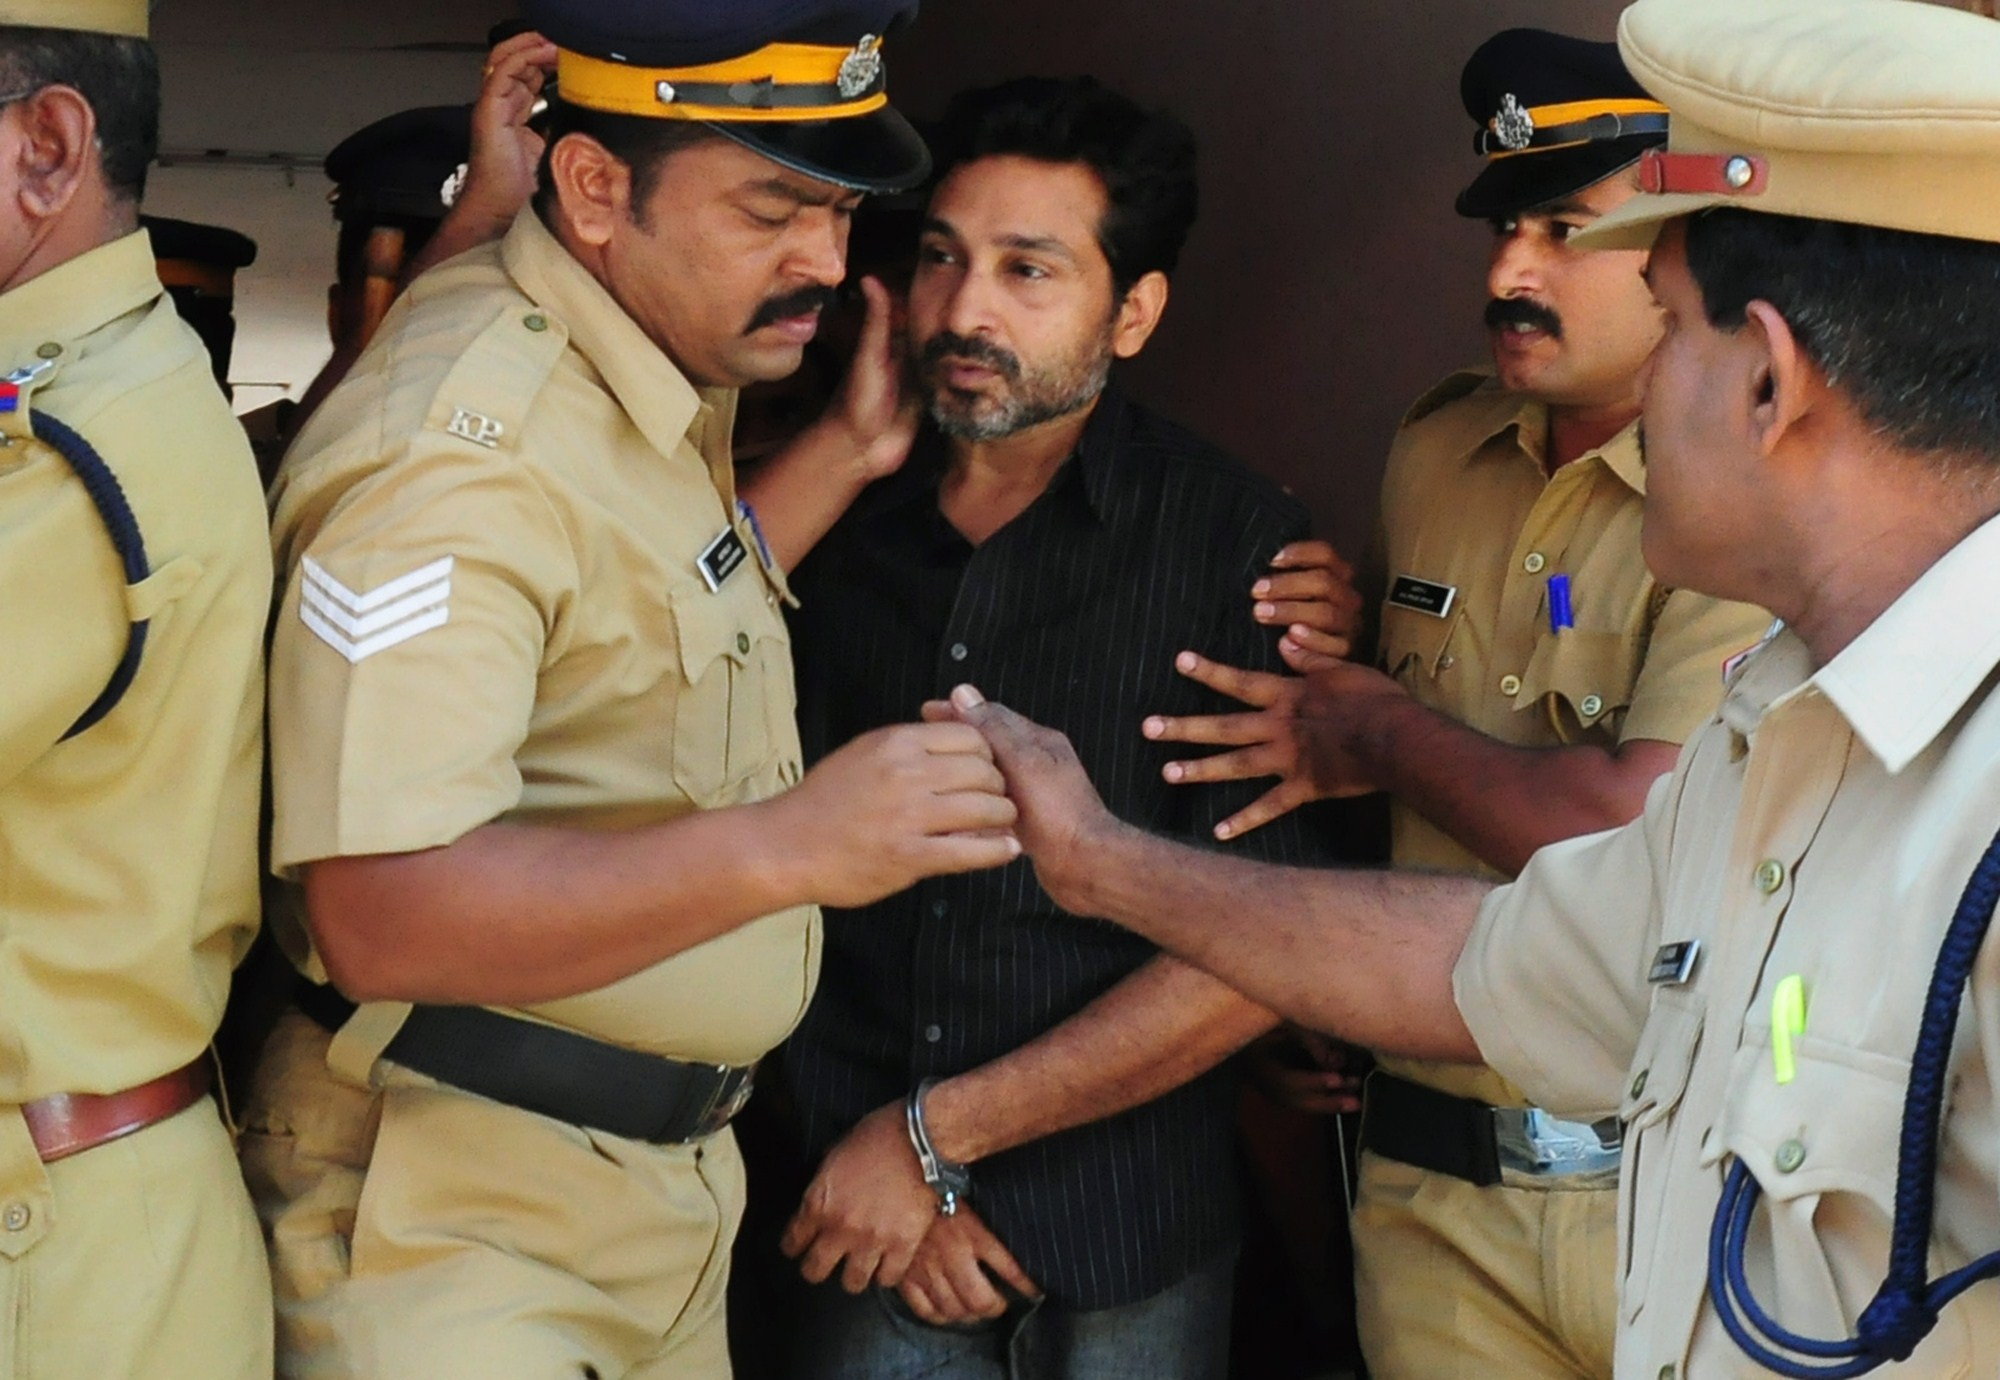 Indian police personnel escort Mohammed Nisham at the Judicial Magistrate's Court in Thrissur, India, on March 11, 2015. Nisham was sentenced to life in prison on Jan. 21, 2016